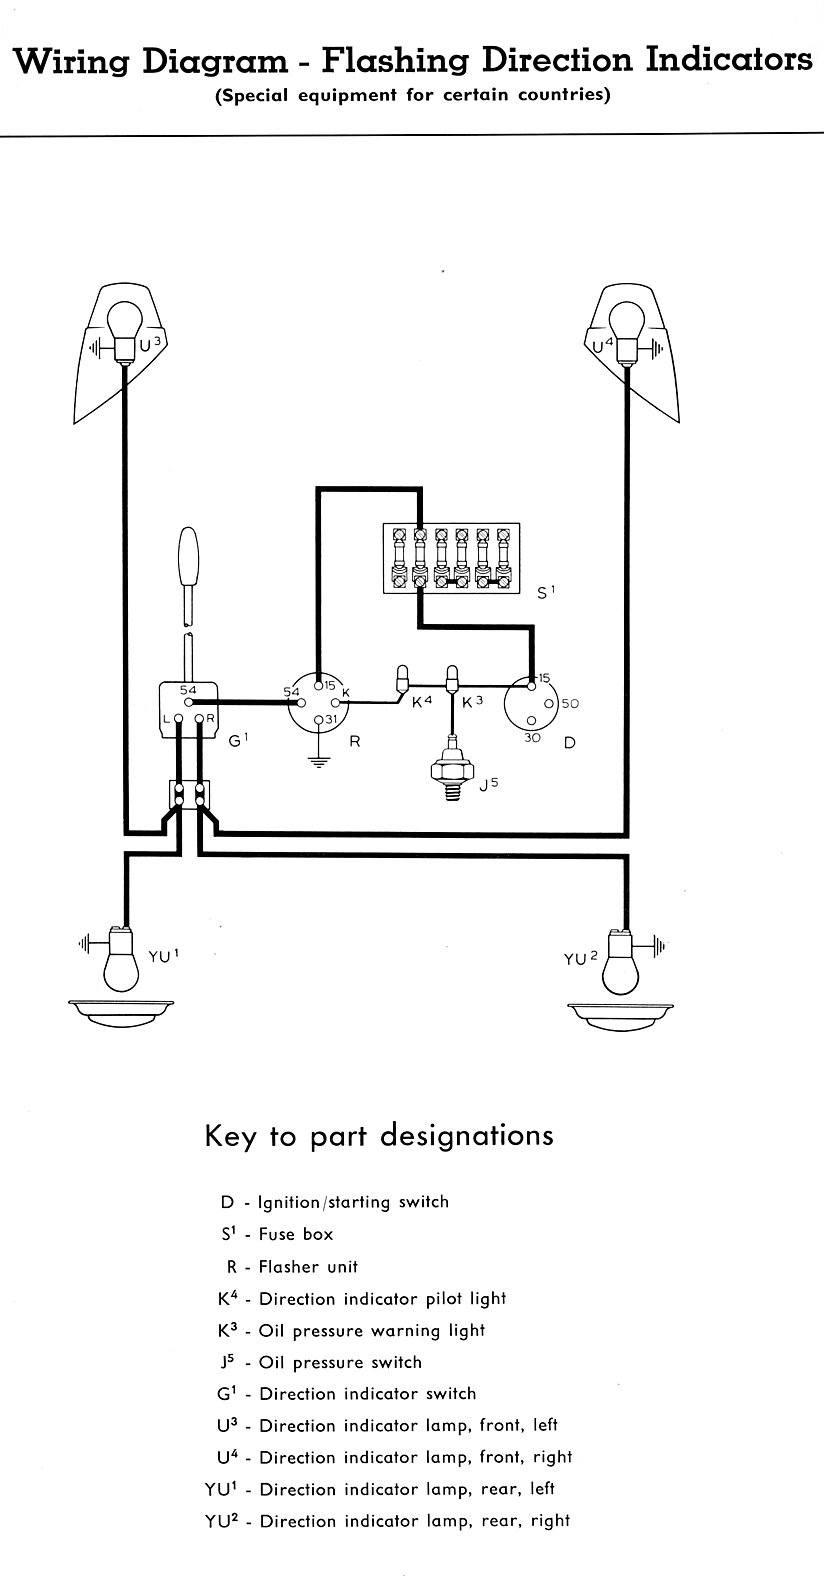 Type 2 Wiring Diagrams Diagram Triple Light Switch Free Download Turn Signal